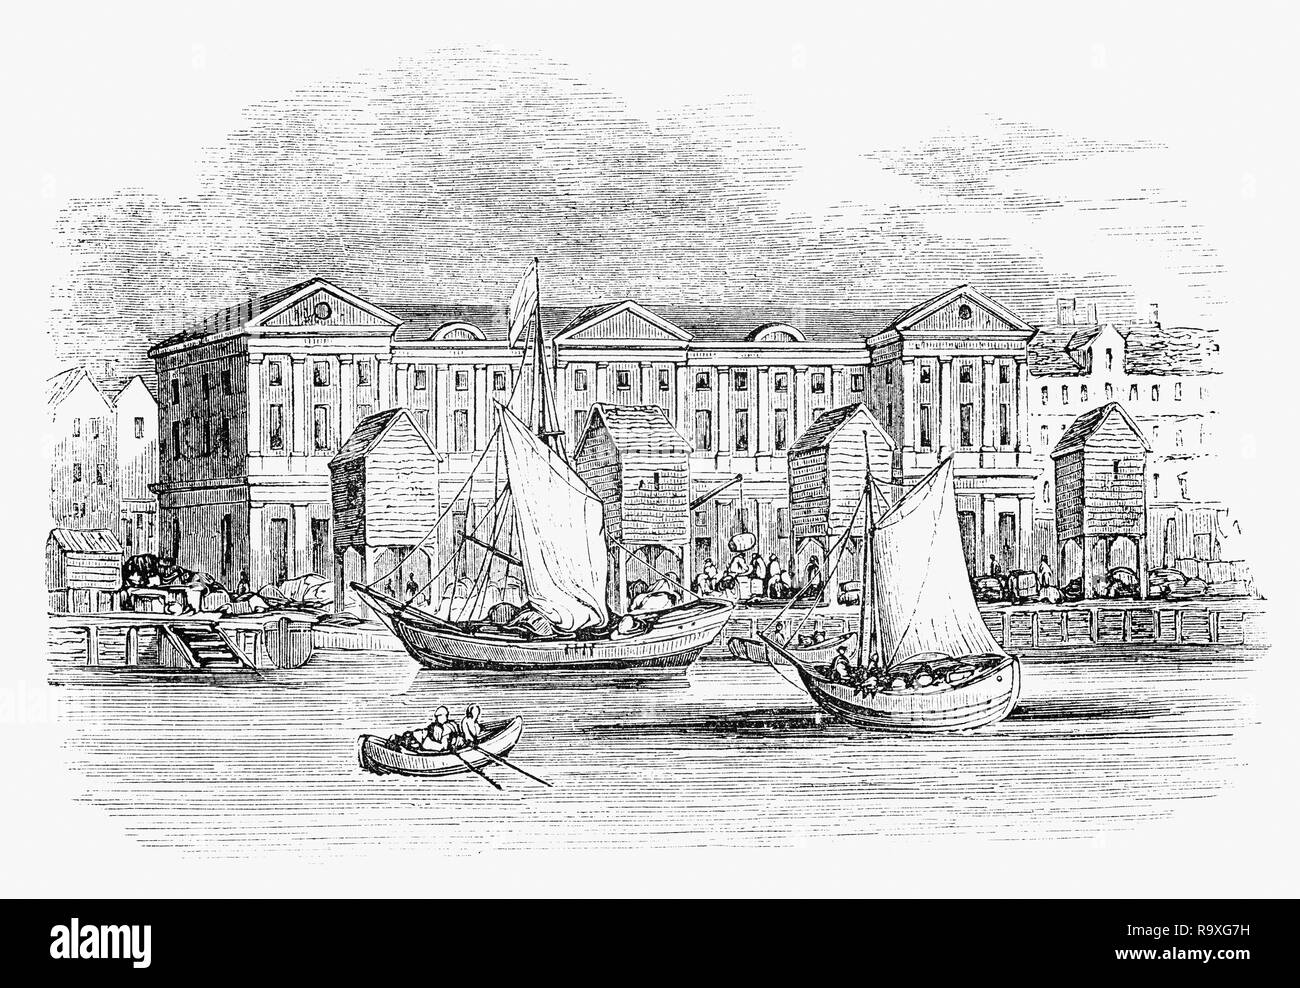 Around 1380, one John Churchman built a custom house on a site on the banks of the River Thames, known as Wool Quay  to collect dues for the City of London, England. In 1382 the Crown came to an agreement to use its facilities. It remained in use until 1559, the freehold passing through various hands. A replacement was erected under the direction of William Paulet, Marquess of Winchester, the Lord High Treasurer in the 17th Century but it was destroyed in the Great Fire of 1666. - Stock Image